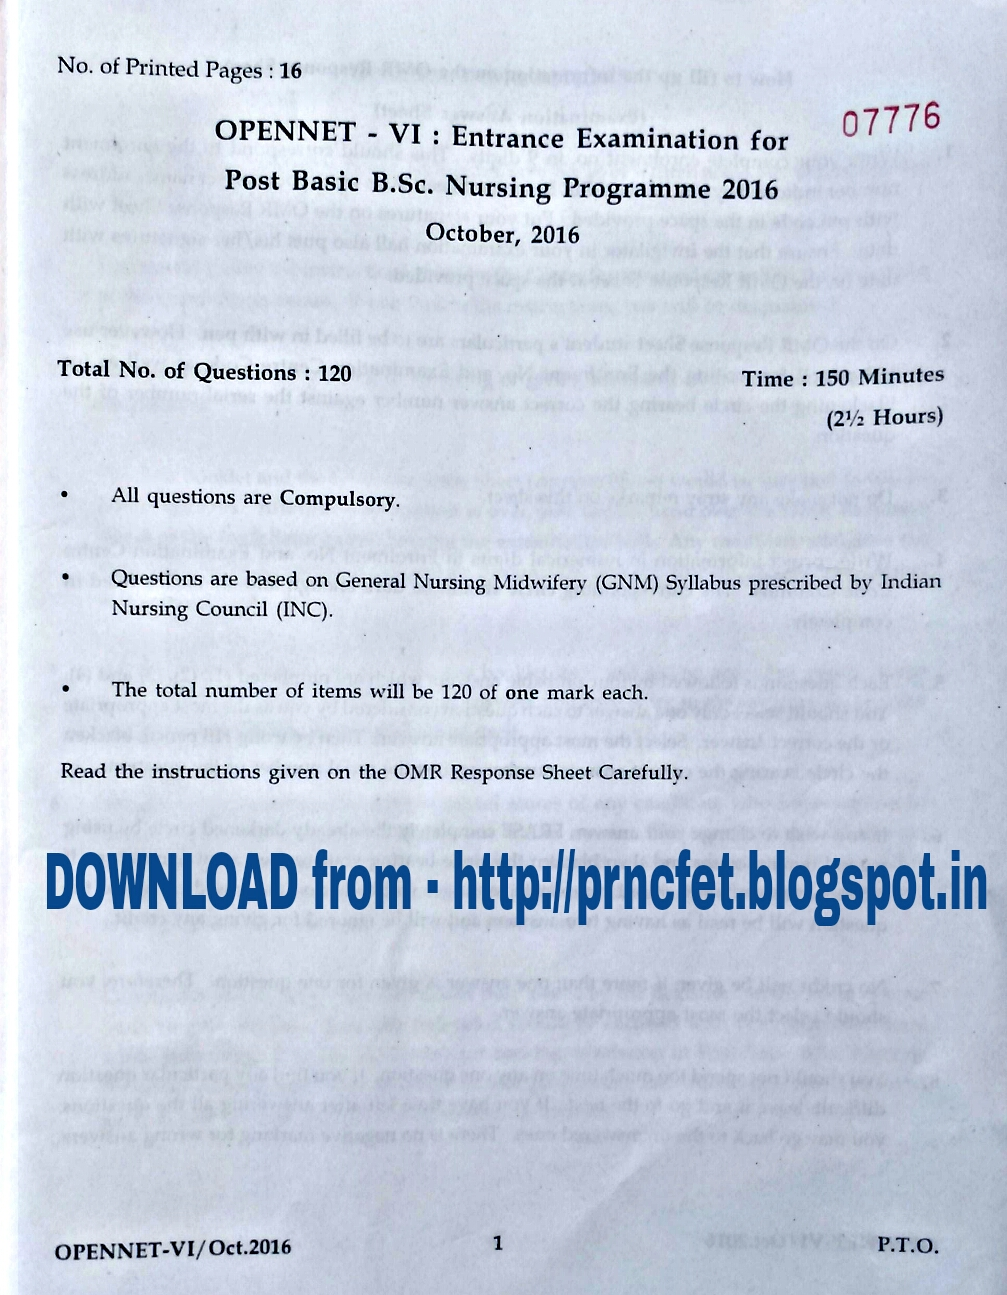 Railway Recruitment 2016 Exam Papers Pdf